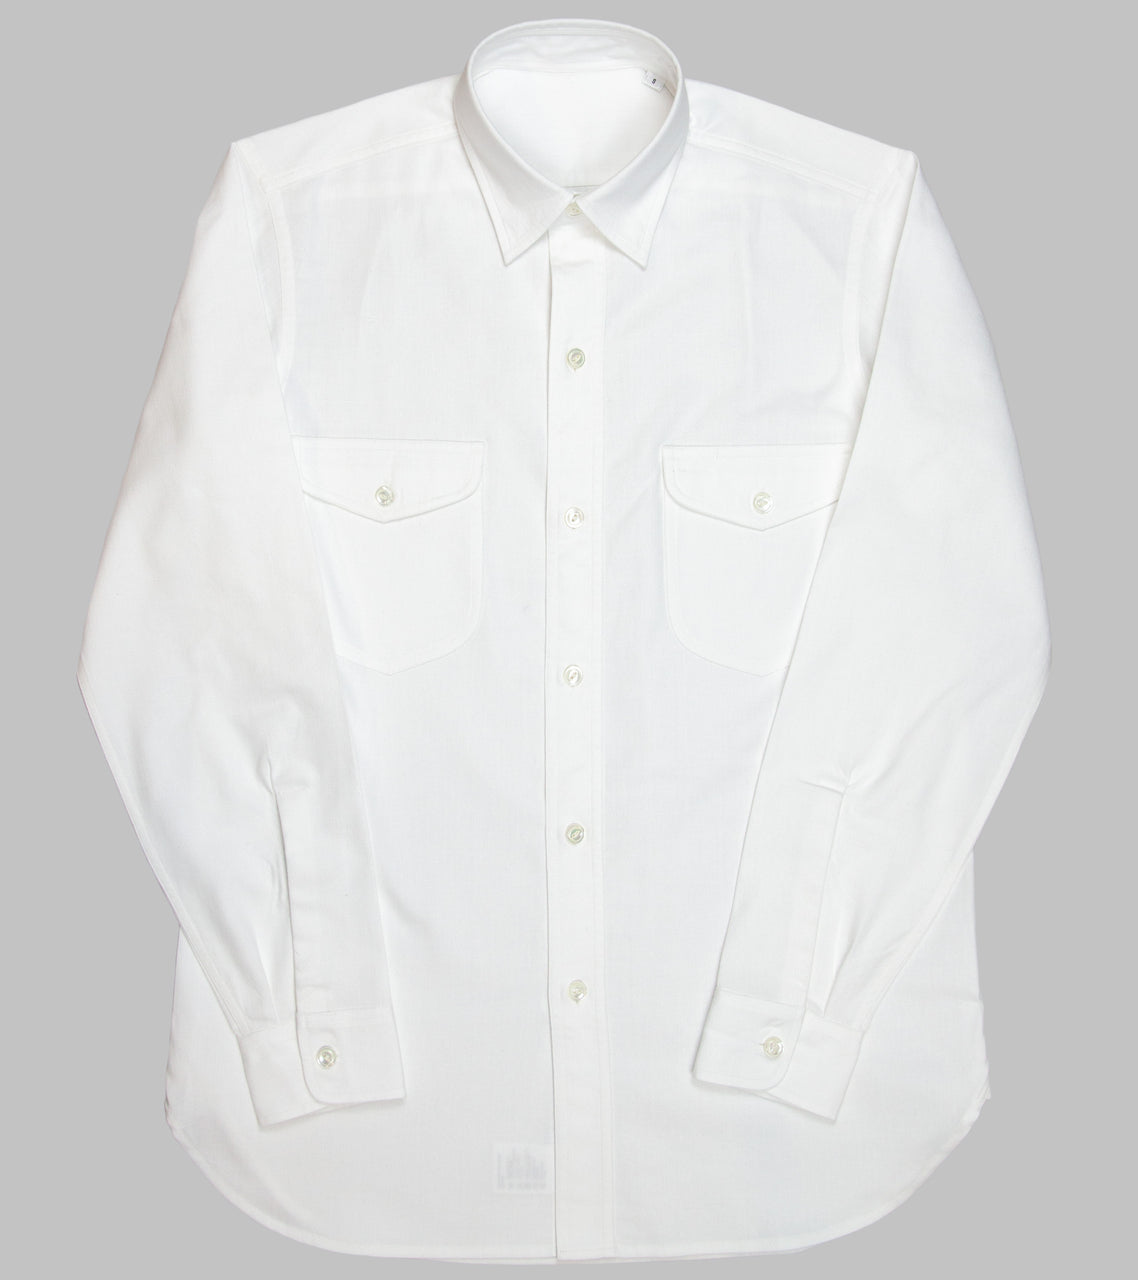 Bryceland's Made-to-Order Teardrop Work Shirt HBT White